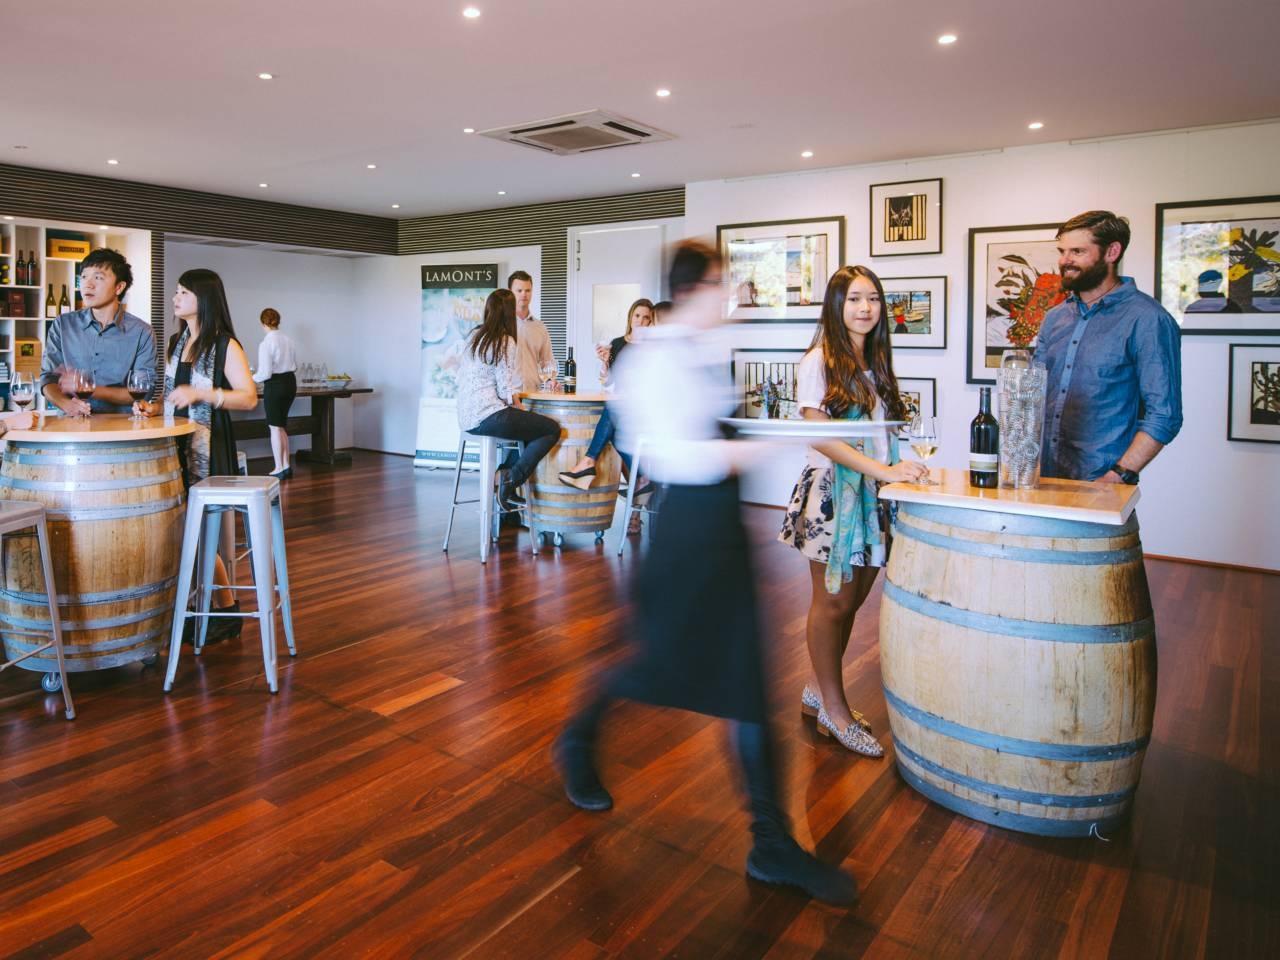 People Mingling In A Private Function Room With Wine Barrels As Tables.